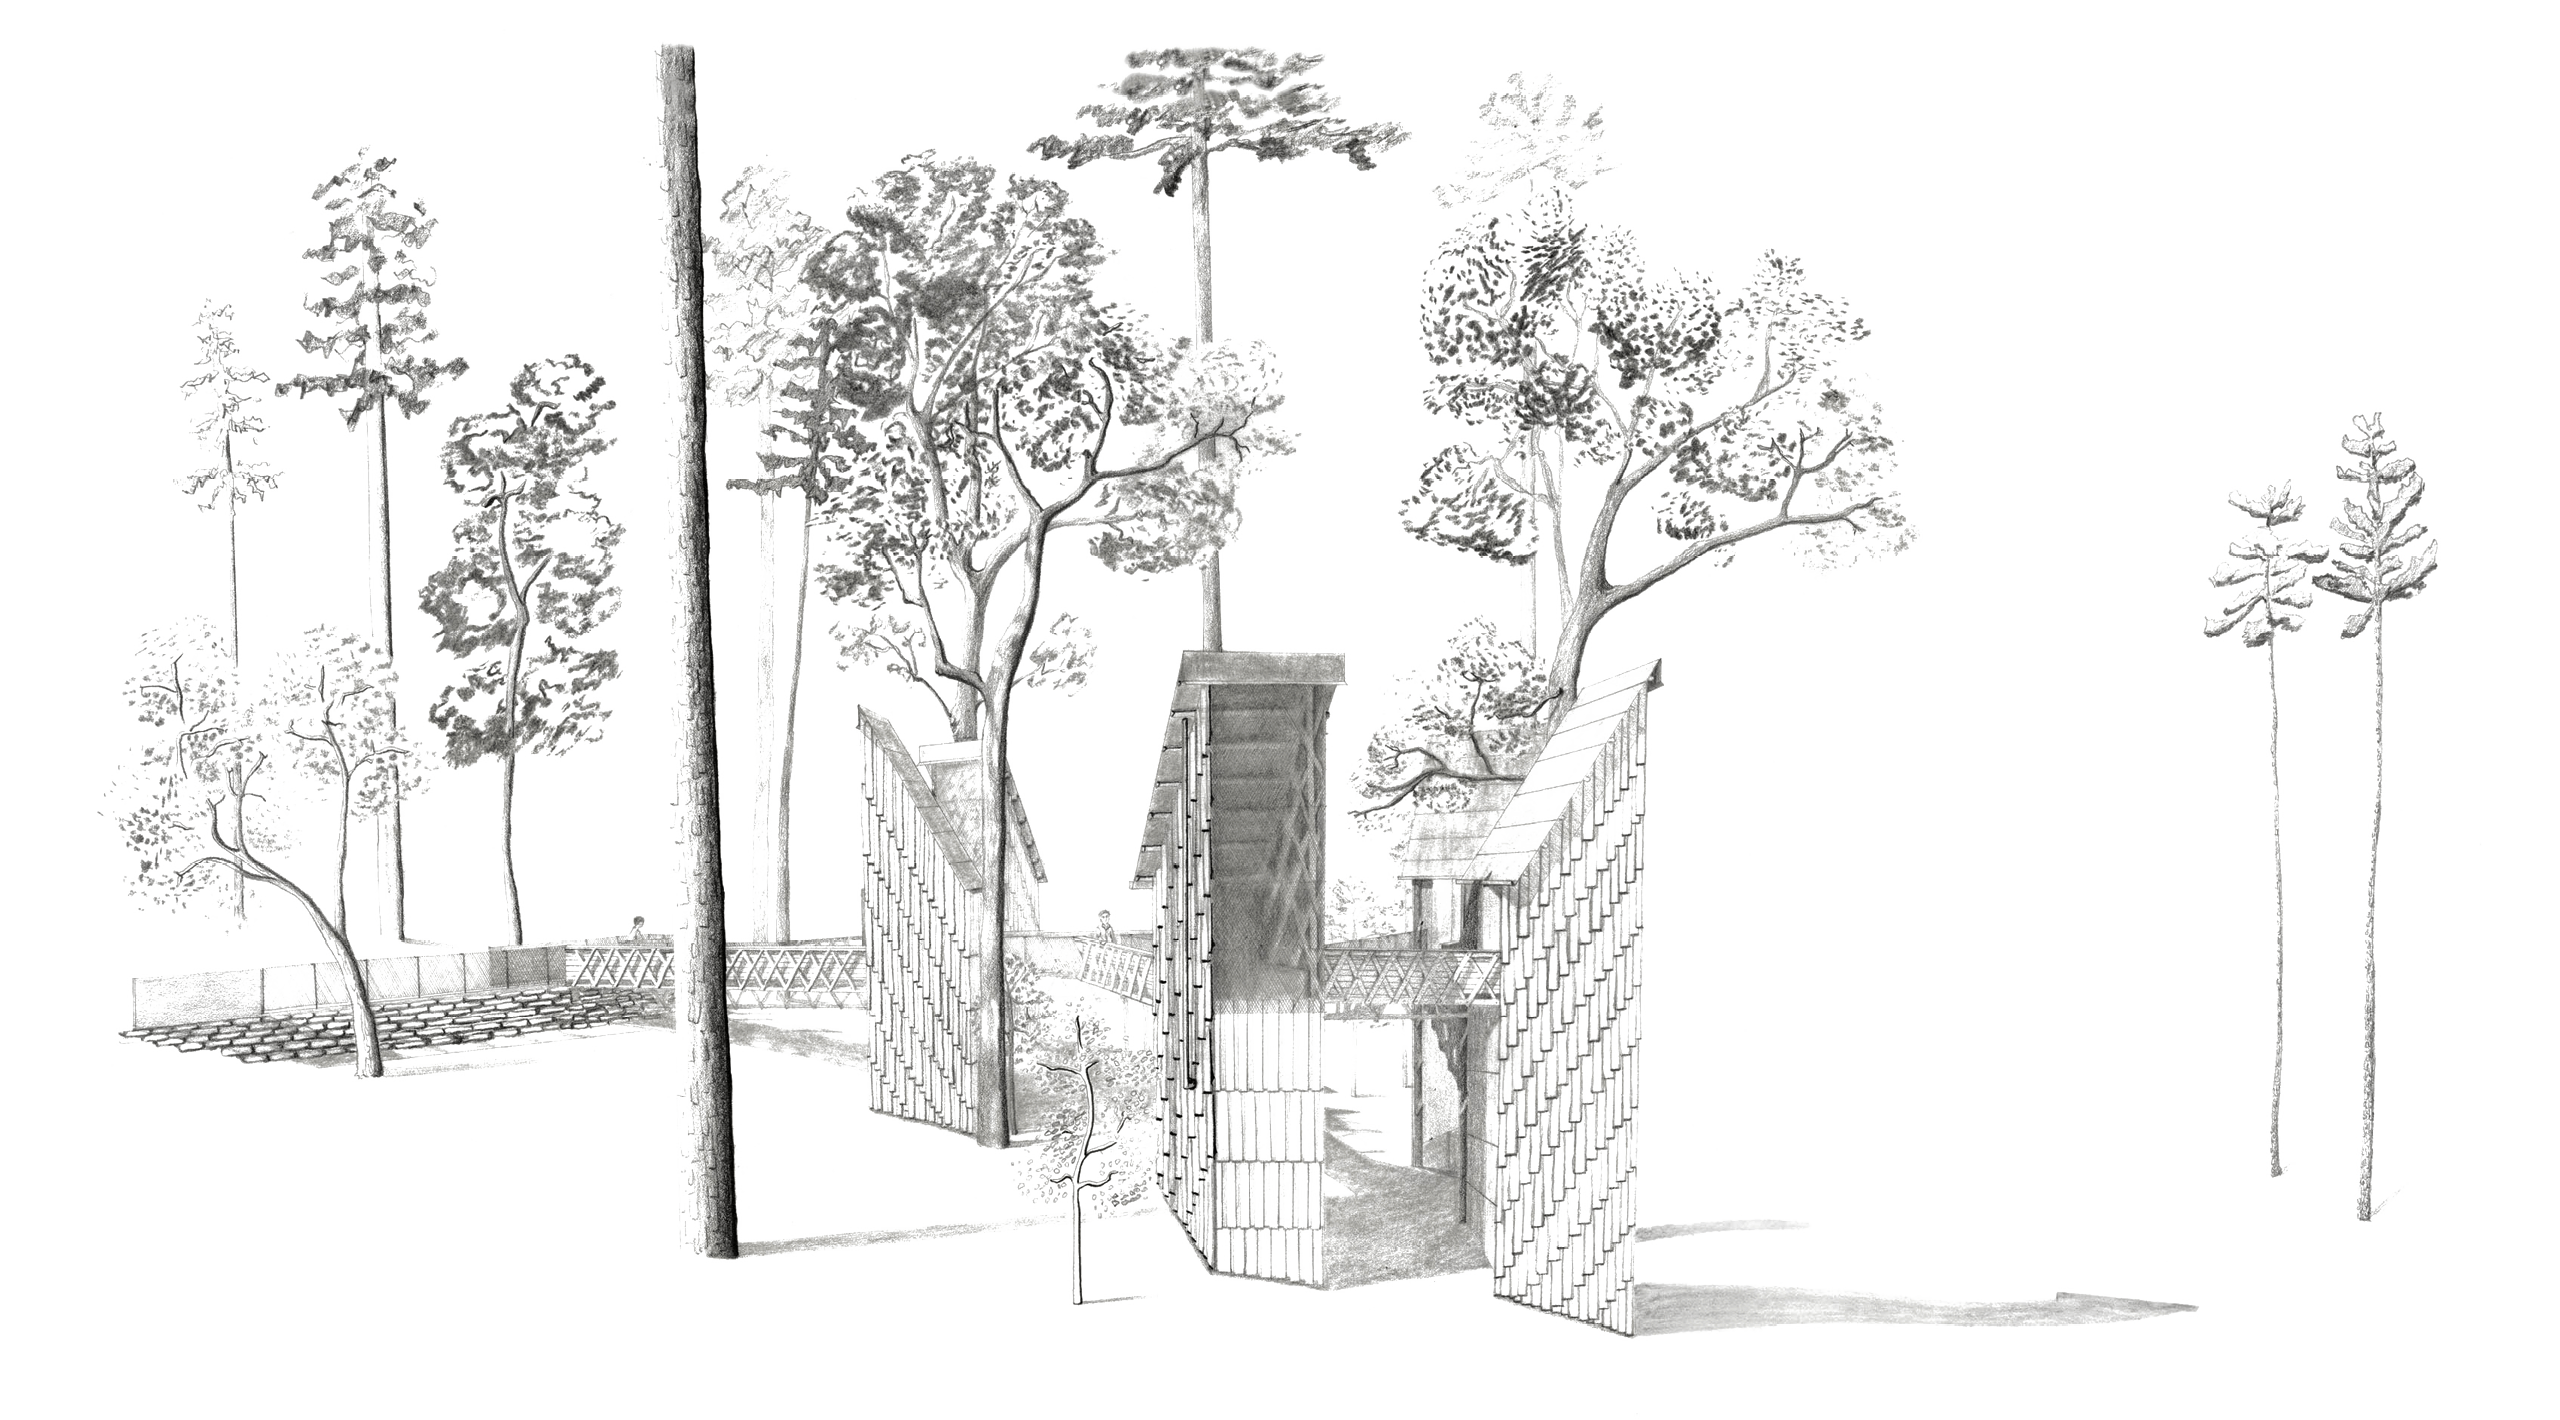 graphite perspective sketch of thinnings bathhouse amongst trees